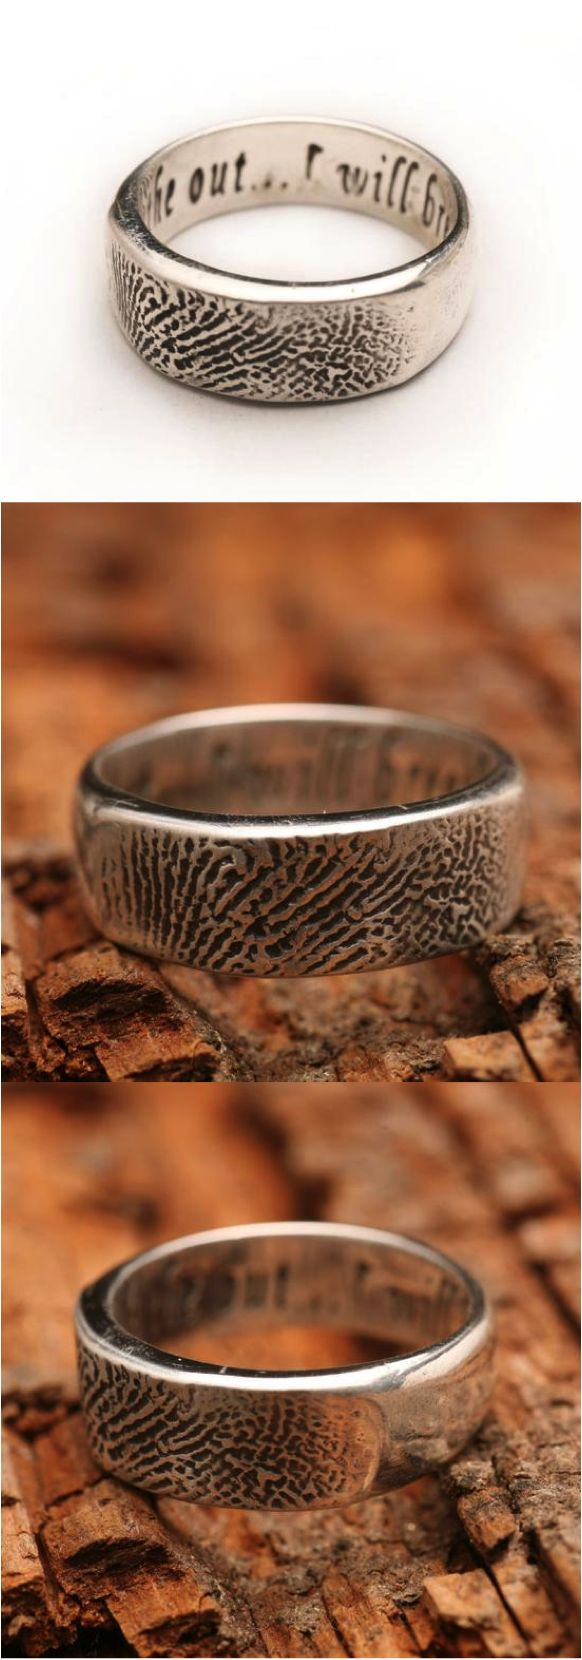 Custom personalized and unique fingerprint ring handmade in sterling silver. This ring is handmade from an actual fingerprint taken from ink and paper. The grooves are clean and well defined that you can feel them with your fingertips! You can personalize your ring with a secret message from your actual handwriting. The ring can fit up to 50 characters depending on the ring size. | Hatch.co